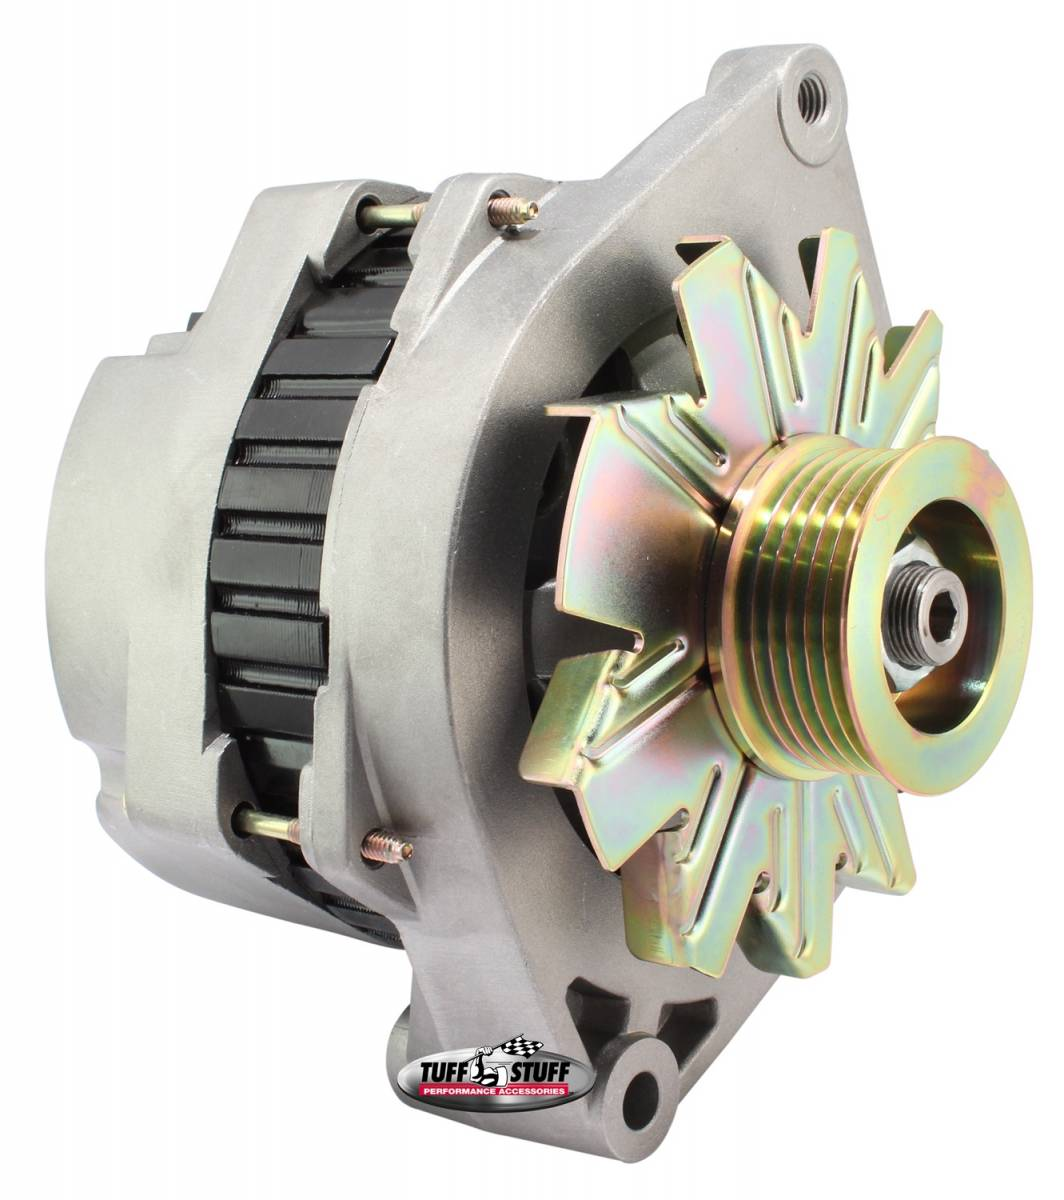 Tuff Stuff Performance - Alternator 170 AMP Incl. Pigtail/OEM Wiring 6 Groove Pulley Factory Cast PLUS+ 7290NC6G